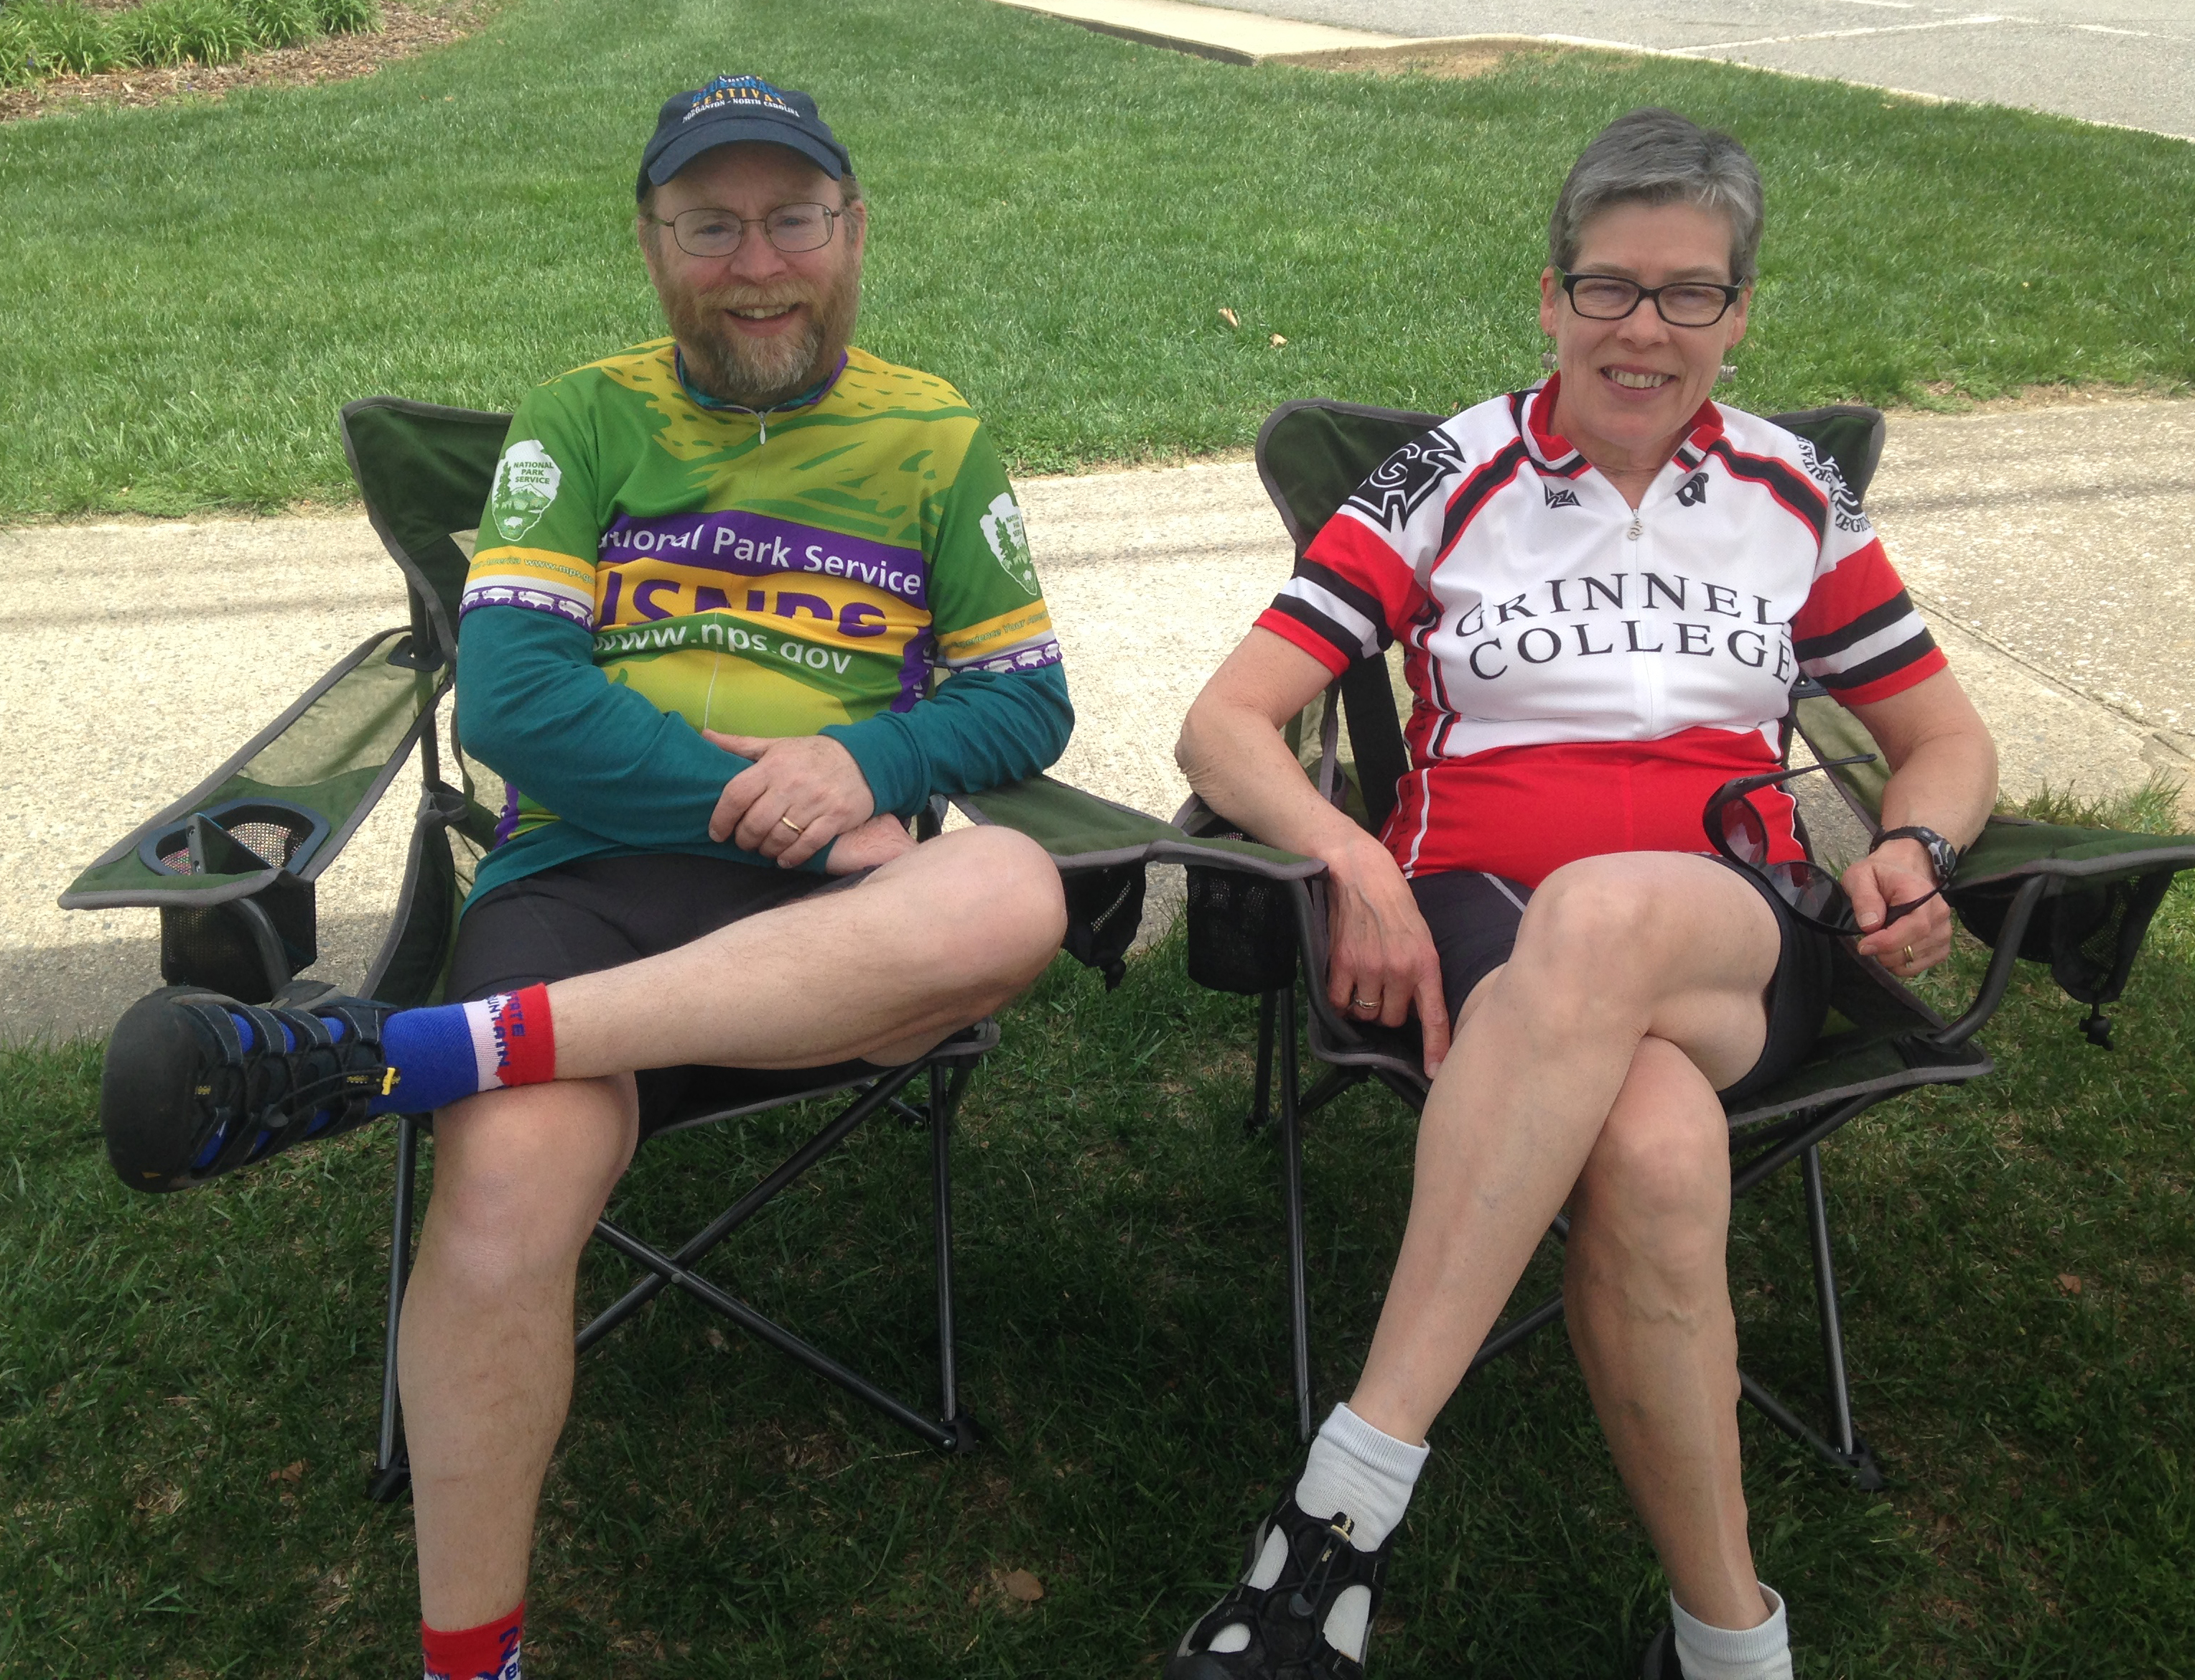 Celia & Wayne relax after finishing Bike Tour of the Carolinas